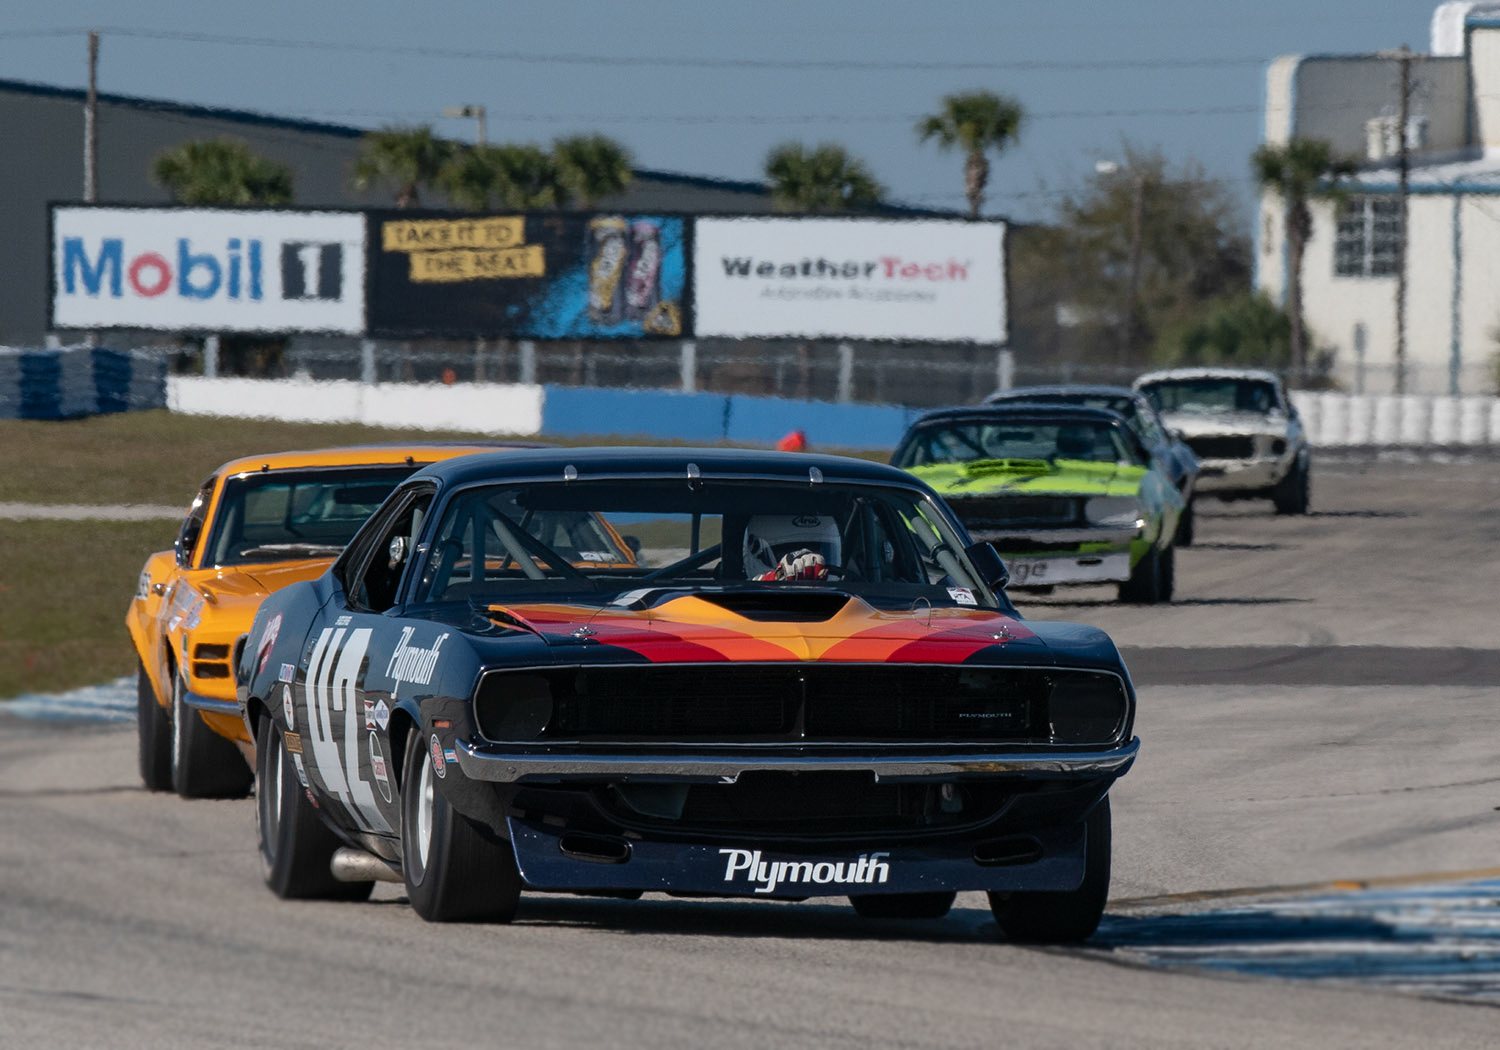 42 Bill Ockerlund 70 Plymouth Cuda